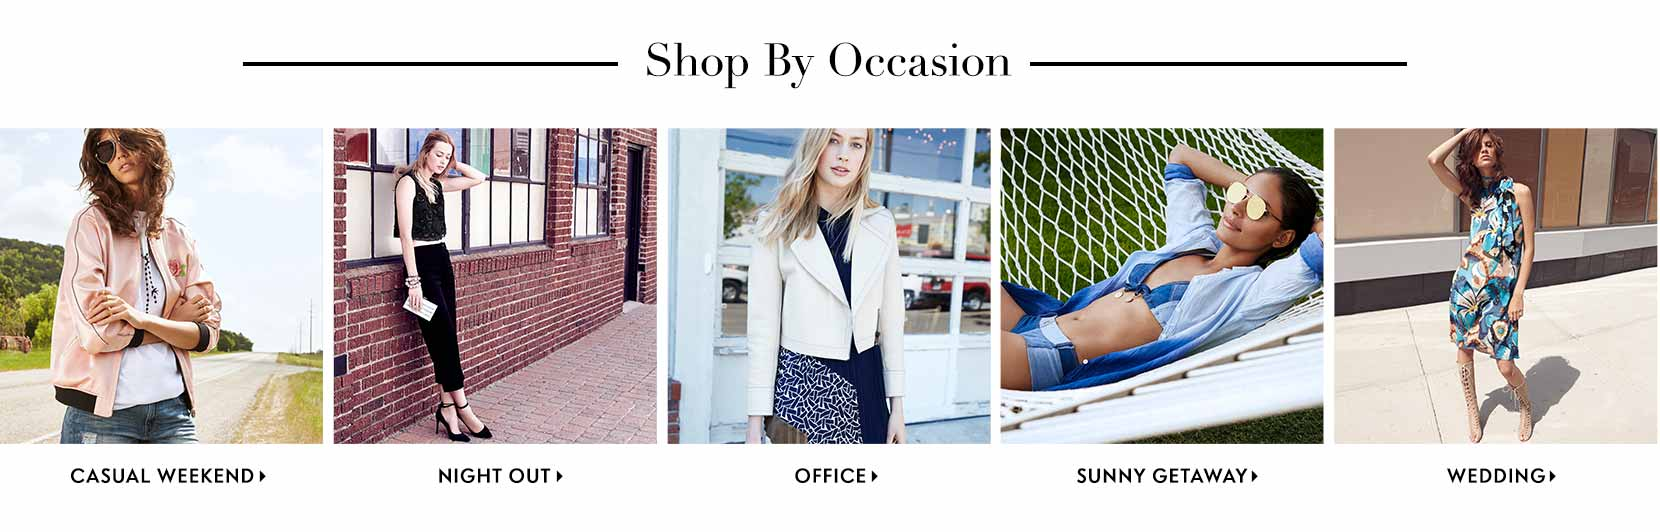 Shop by occasion! Wedding, night out, casual weekend, sunny getaway, office